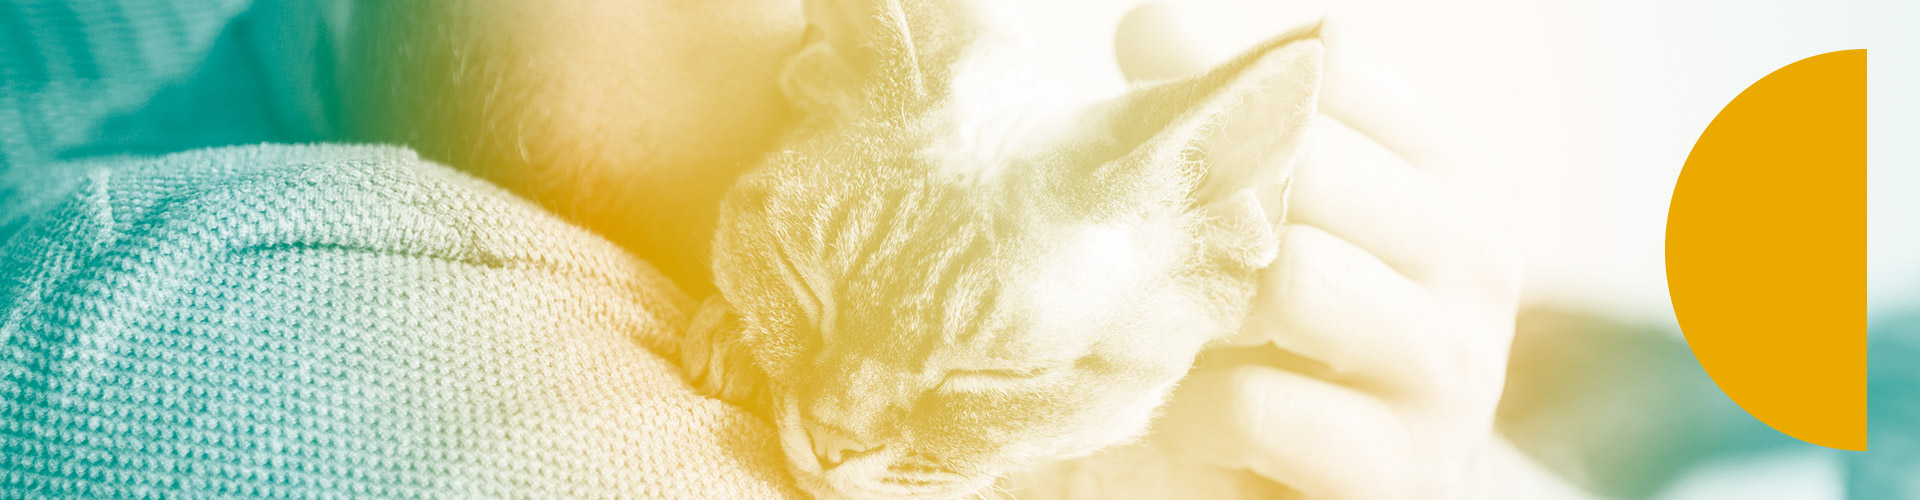 Gnubiotics at the 4th Annual Petcare Innovation Summit May 18th -19th 2021